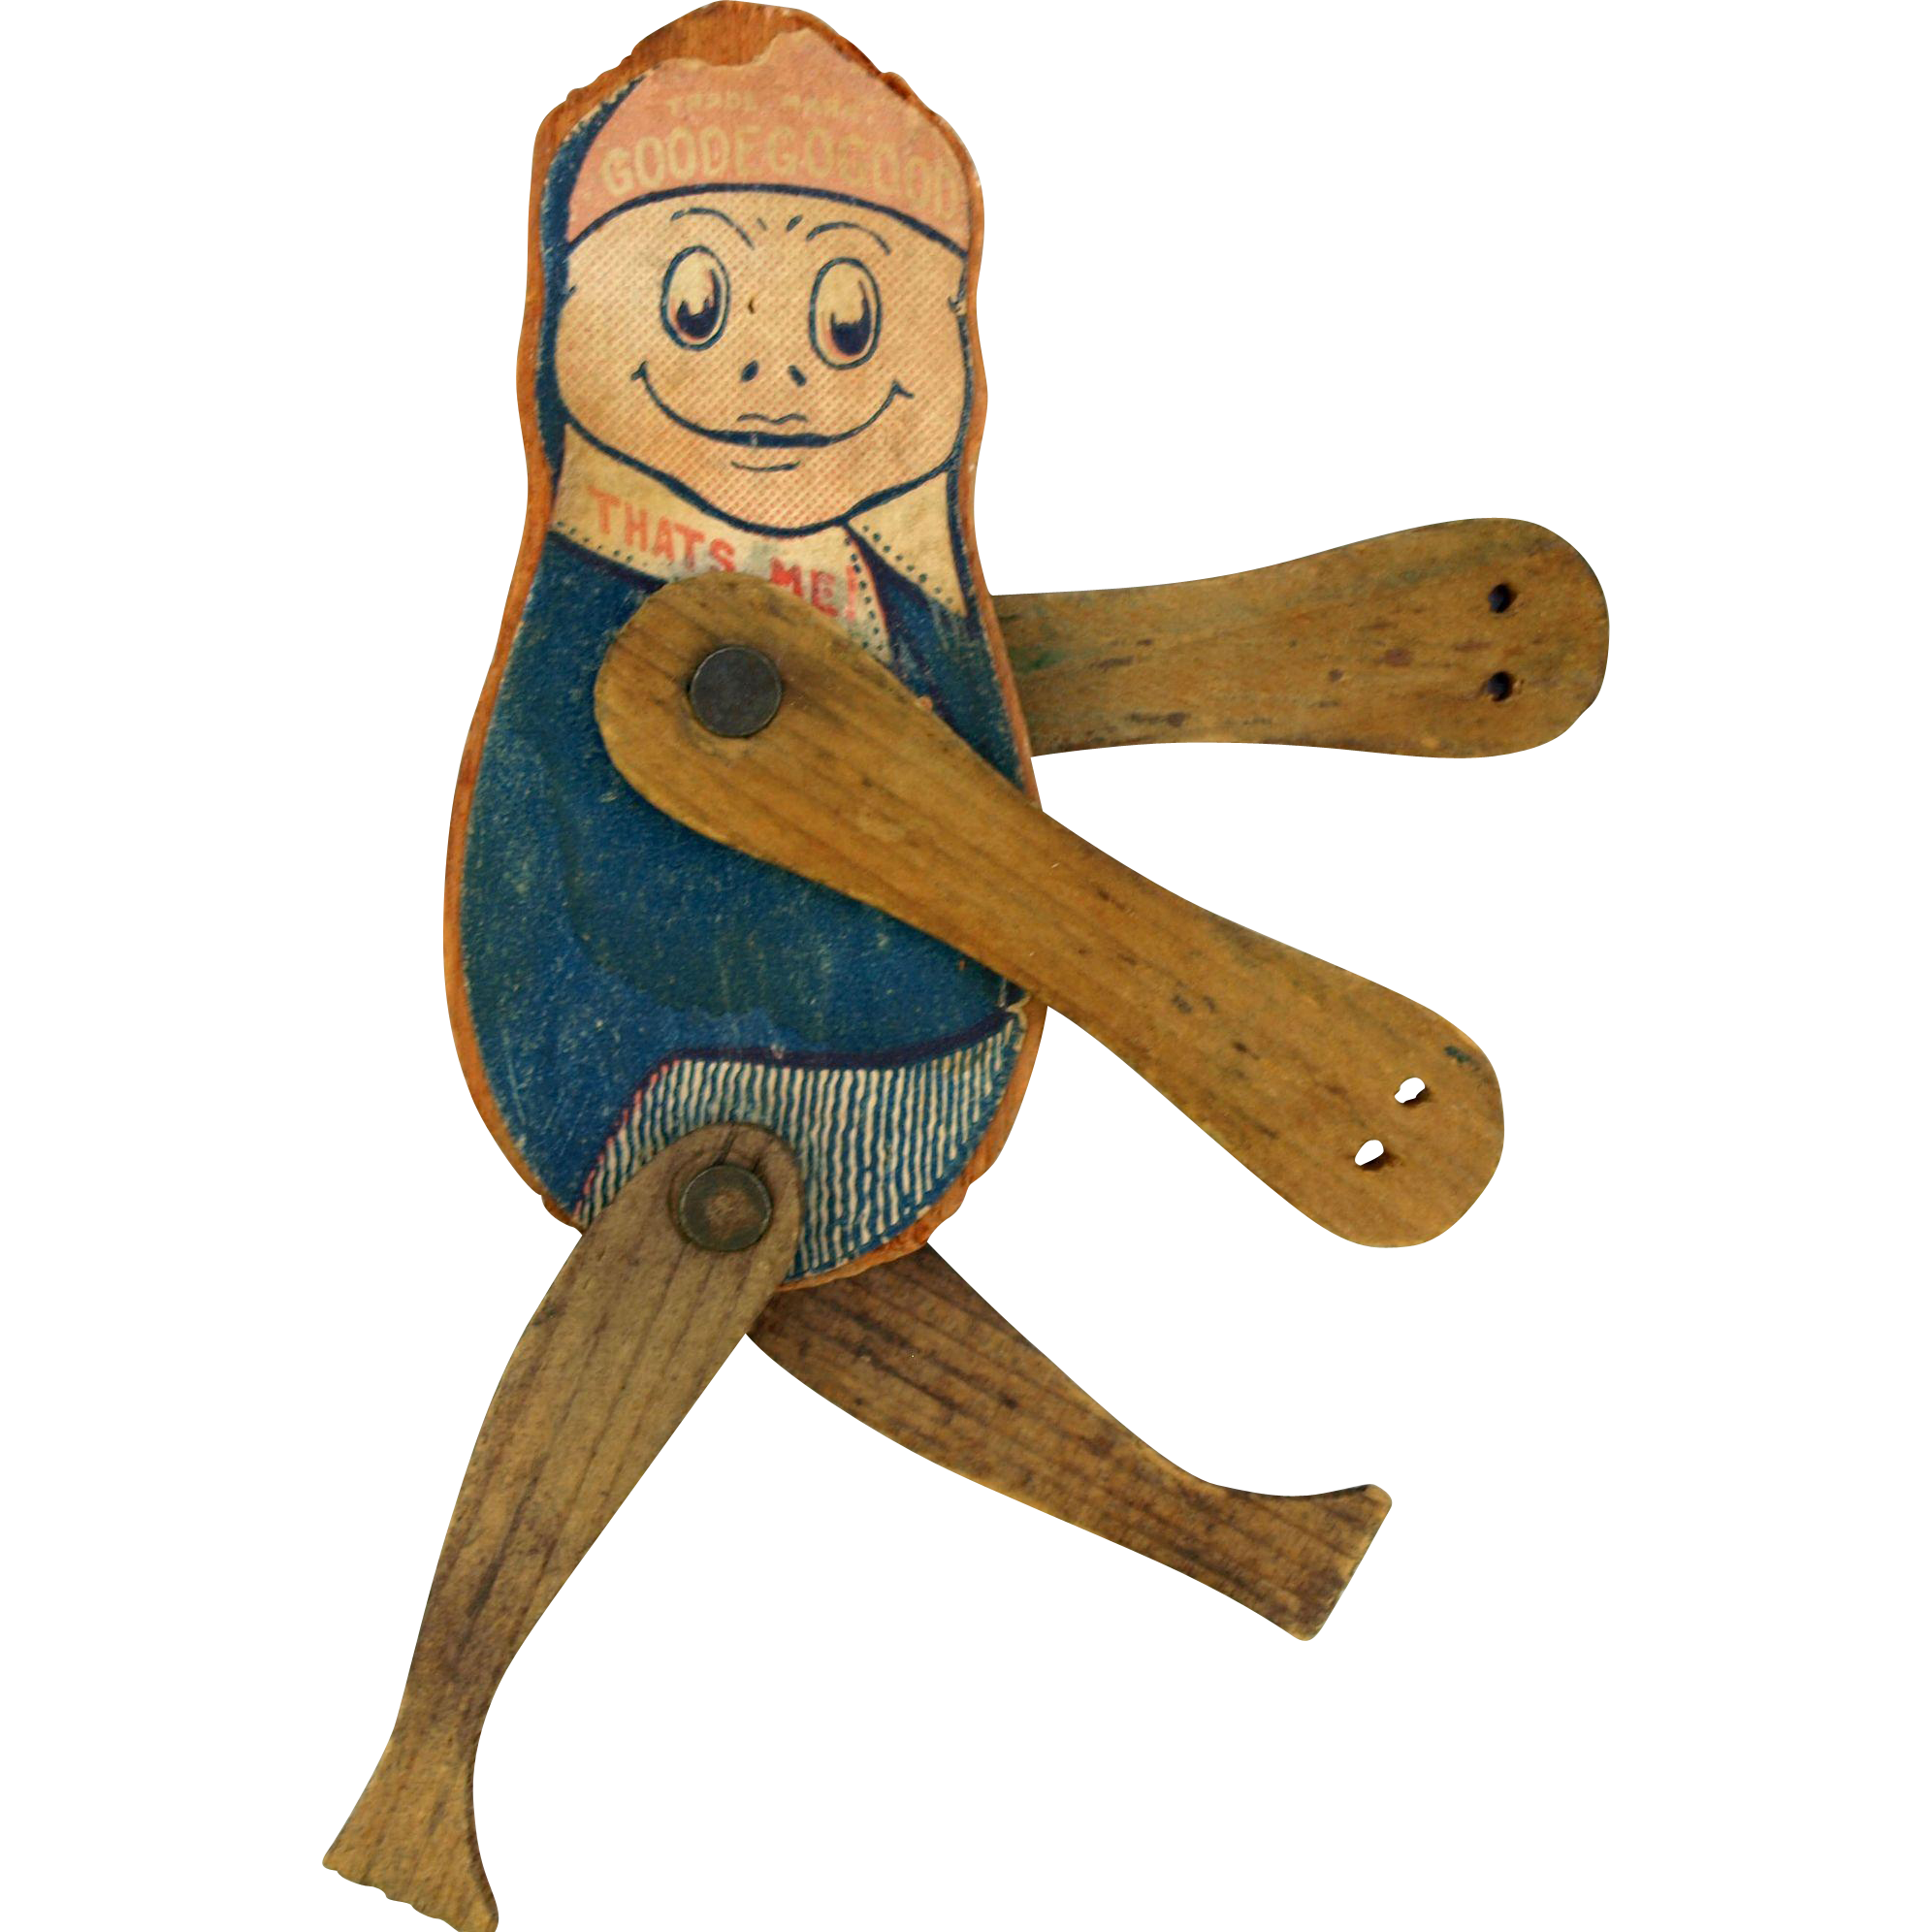 Antique 1903 Goodegogood articulated flat litho on wood acrobat boy doll Good E Gogood That's me! trademark  Frederick M Osgood Manchester NH